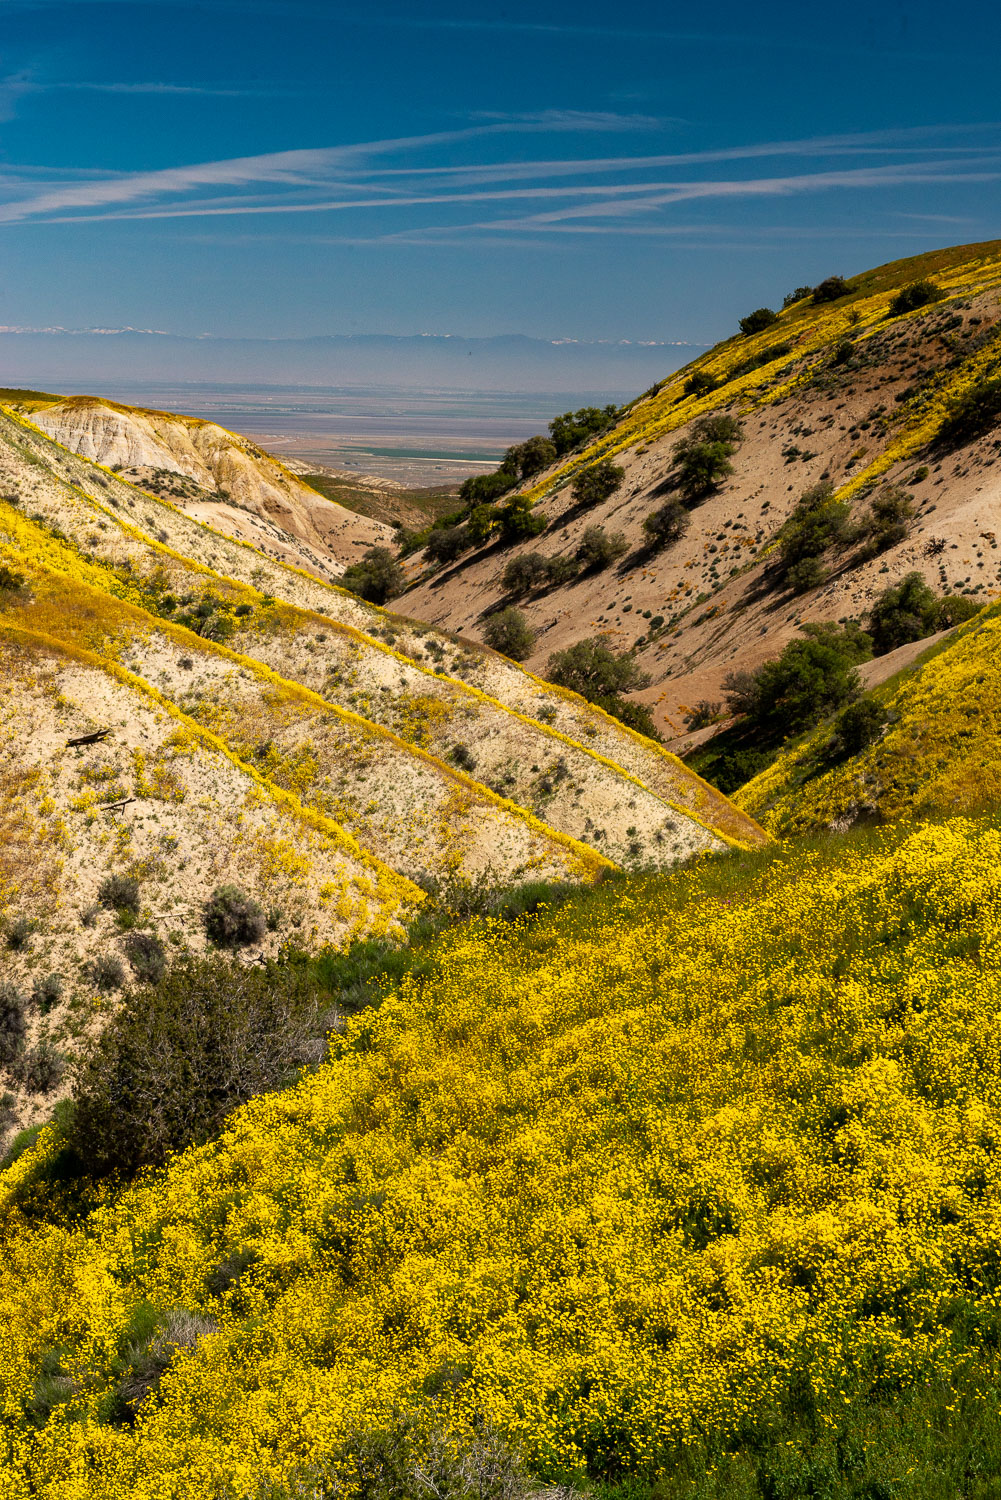 Yellow Goldfields and Blue Sky at Carrizo Plain National Monumen